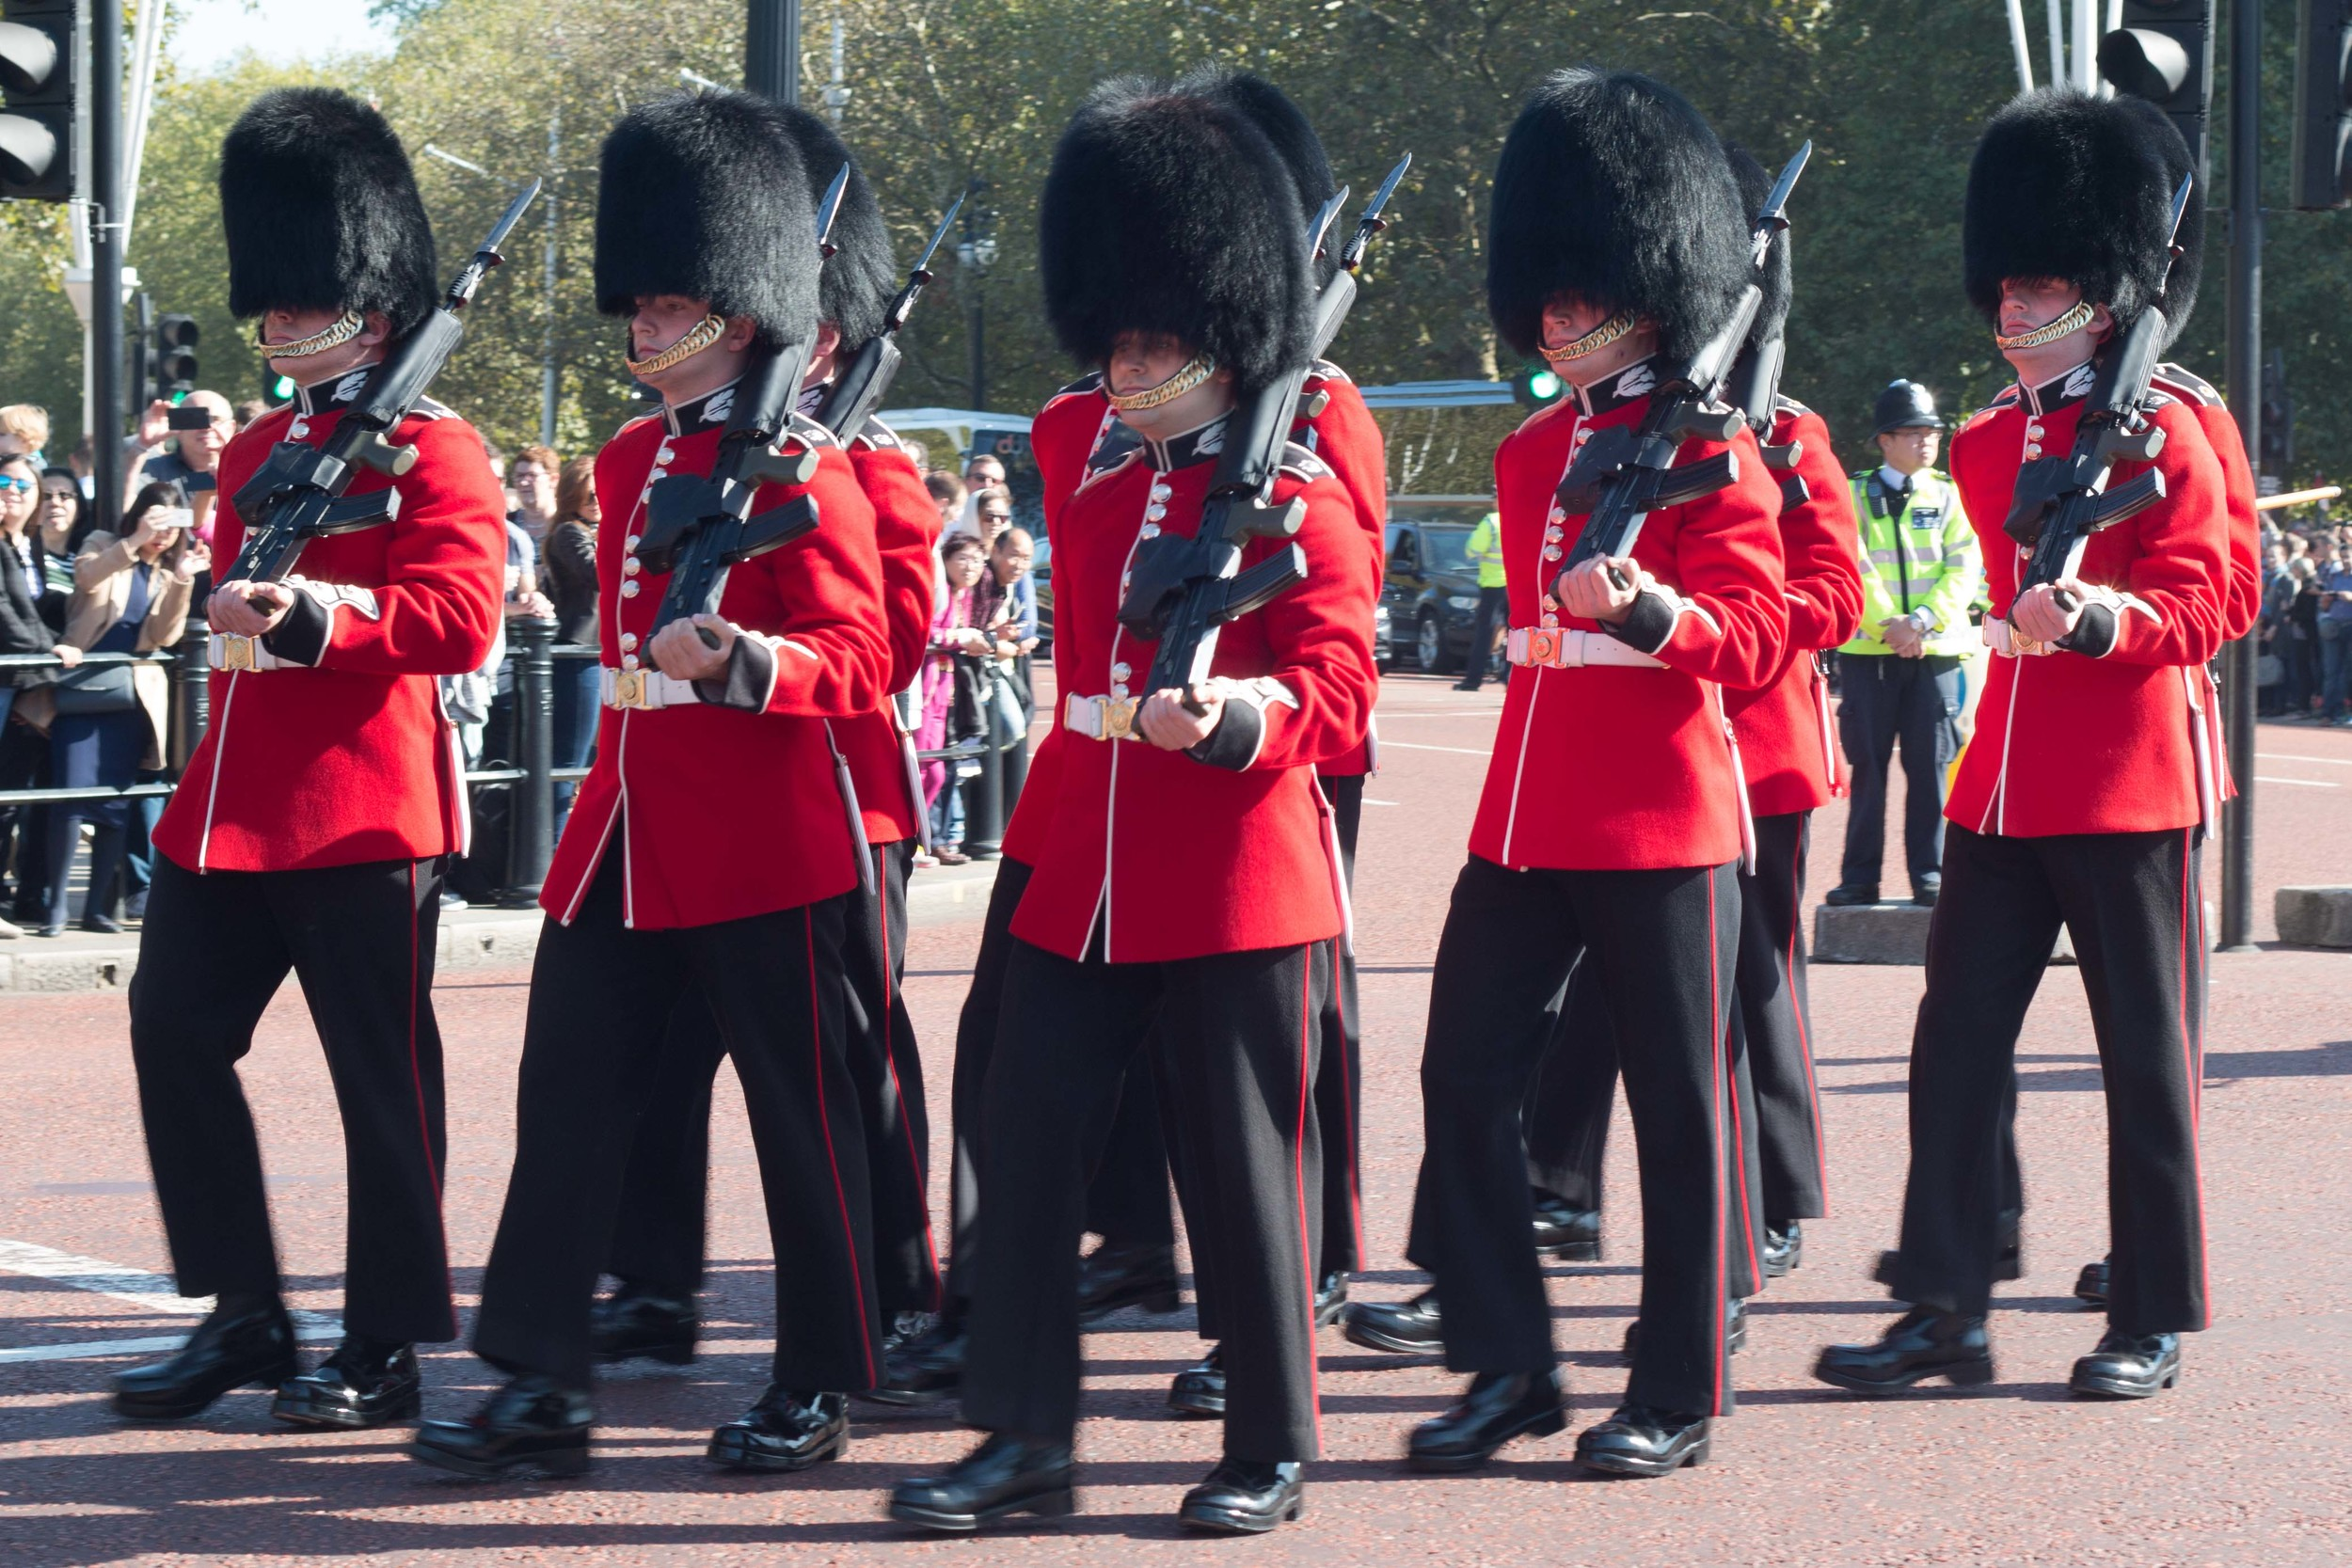 the guards as they march towards the Palace